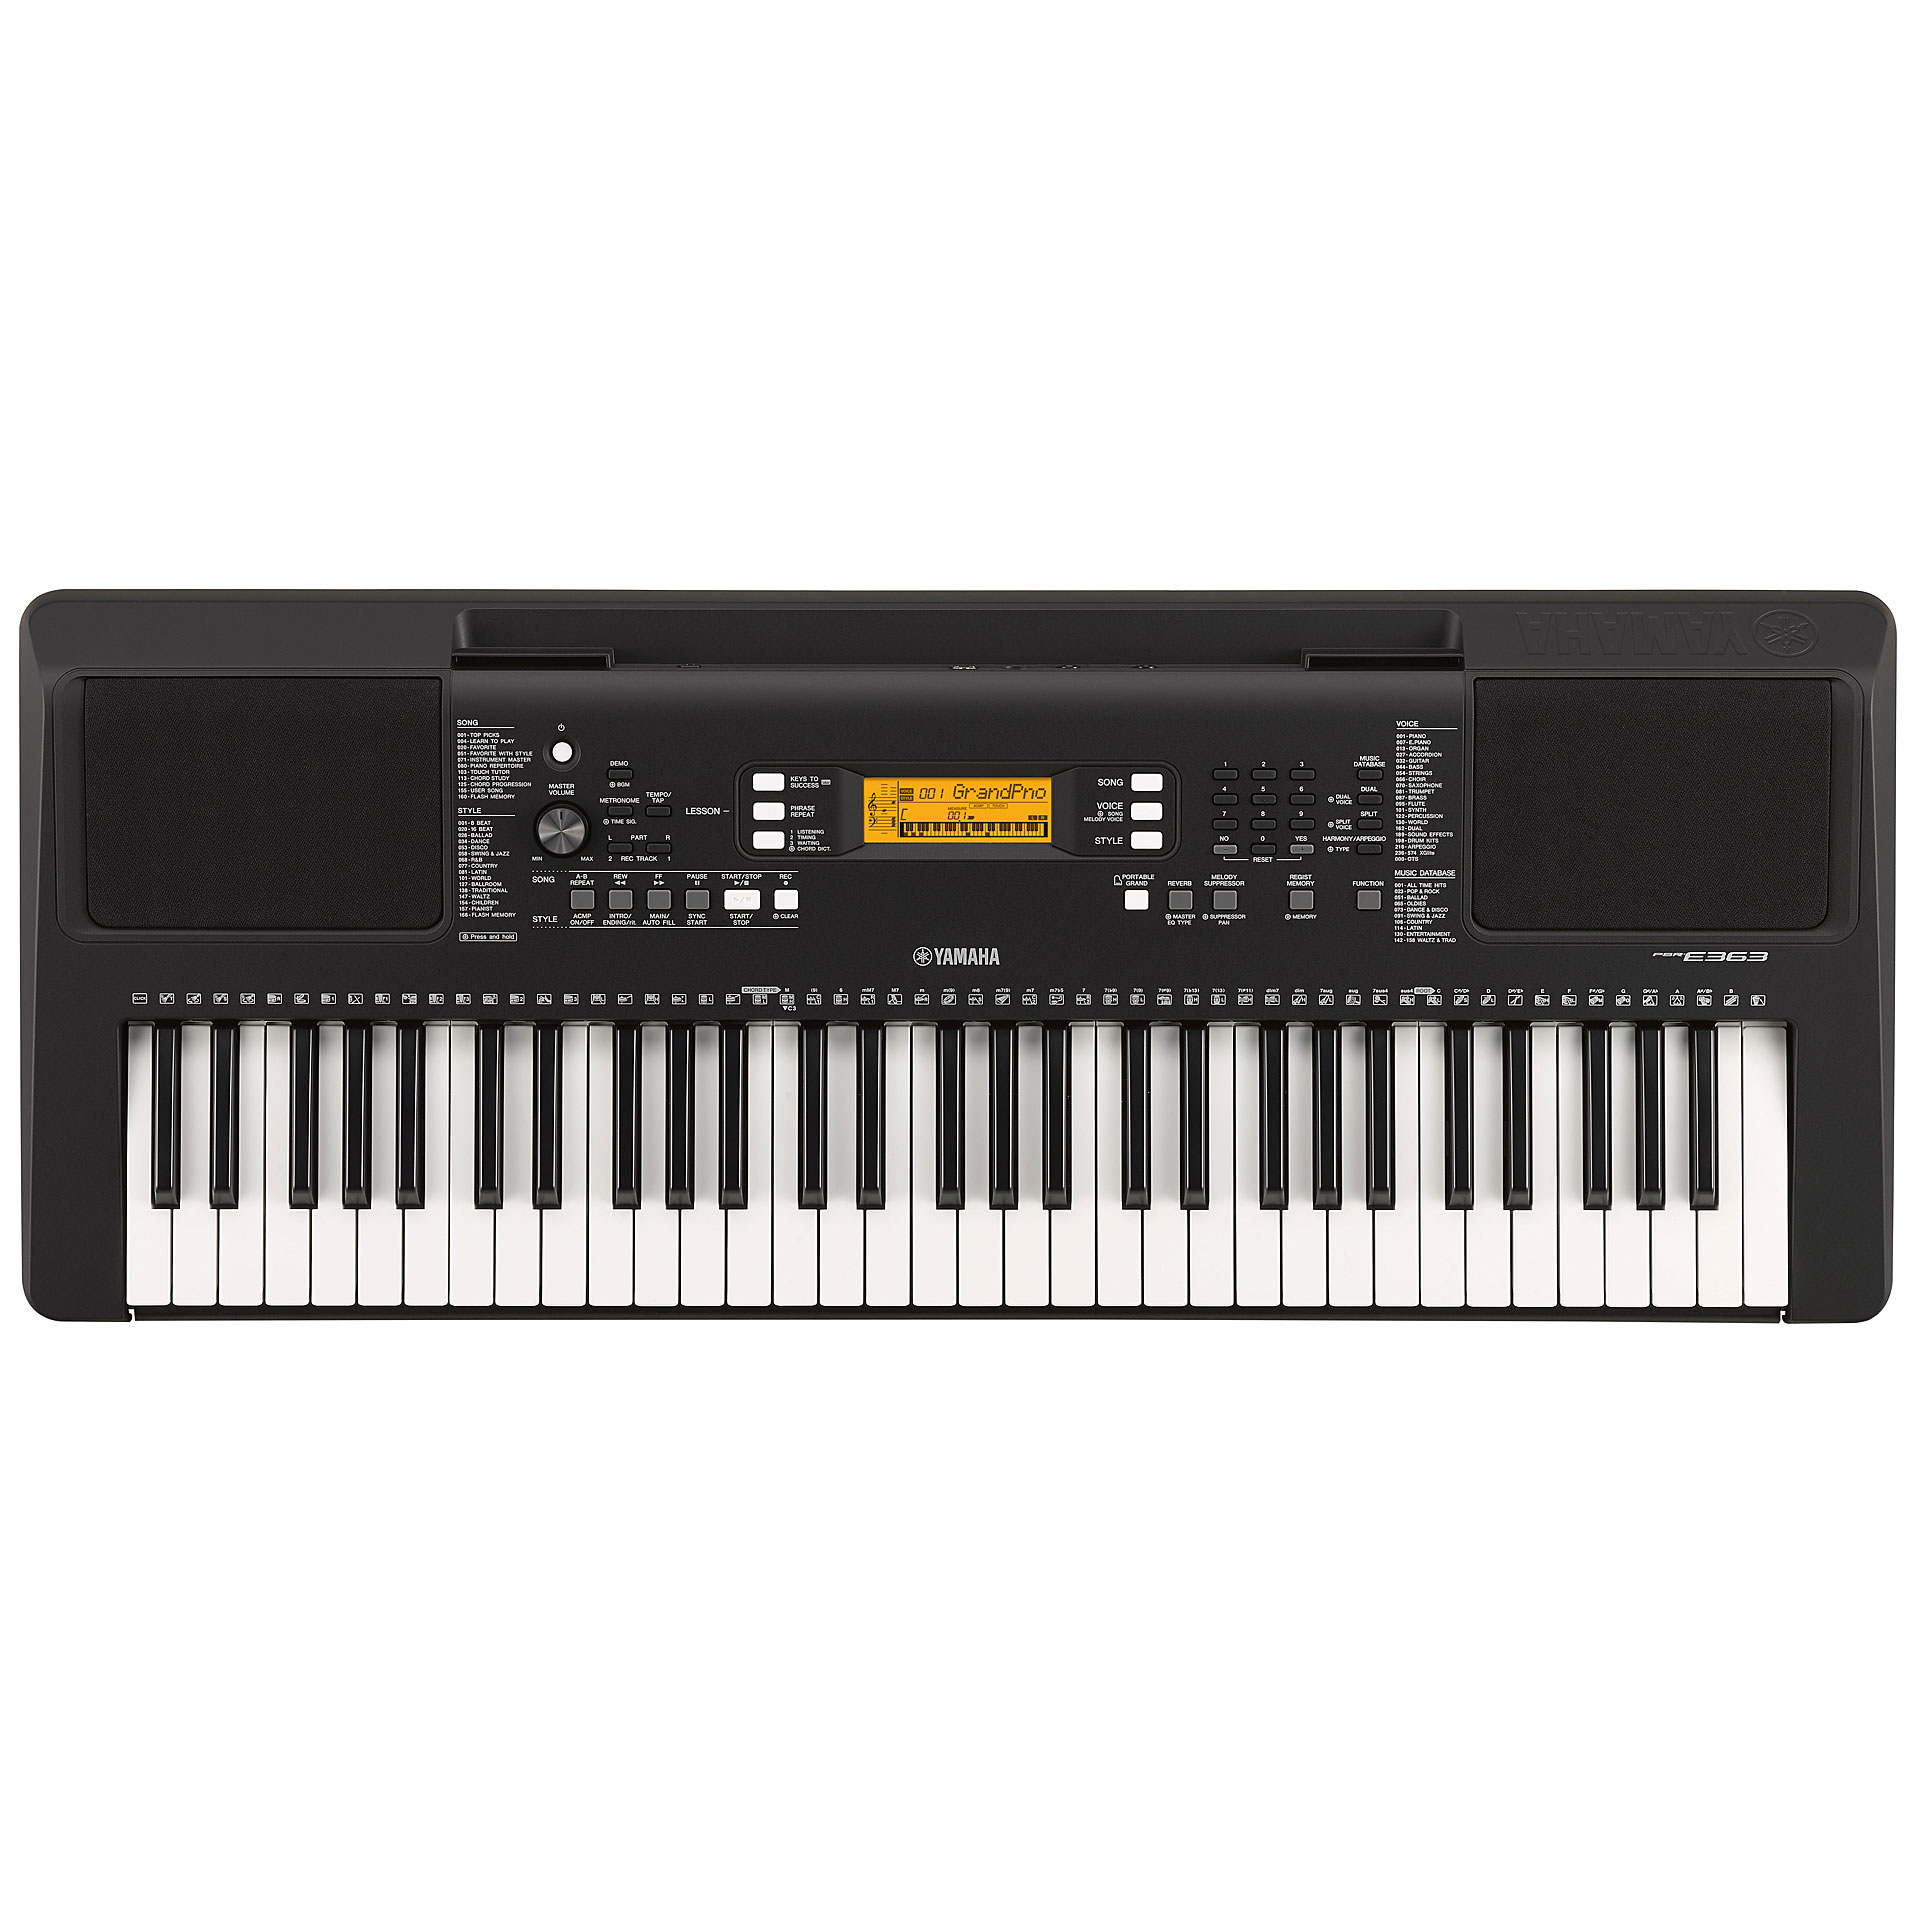 Image result for Yamaha PSR e363 from yamaha